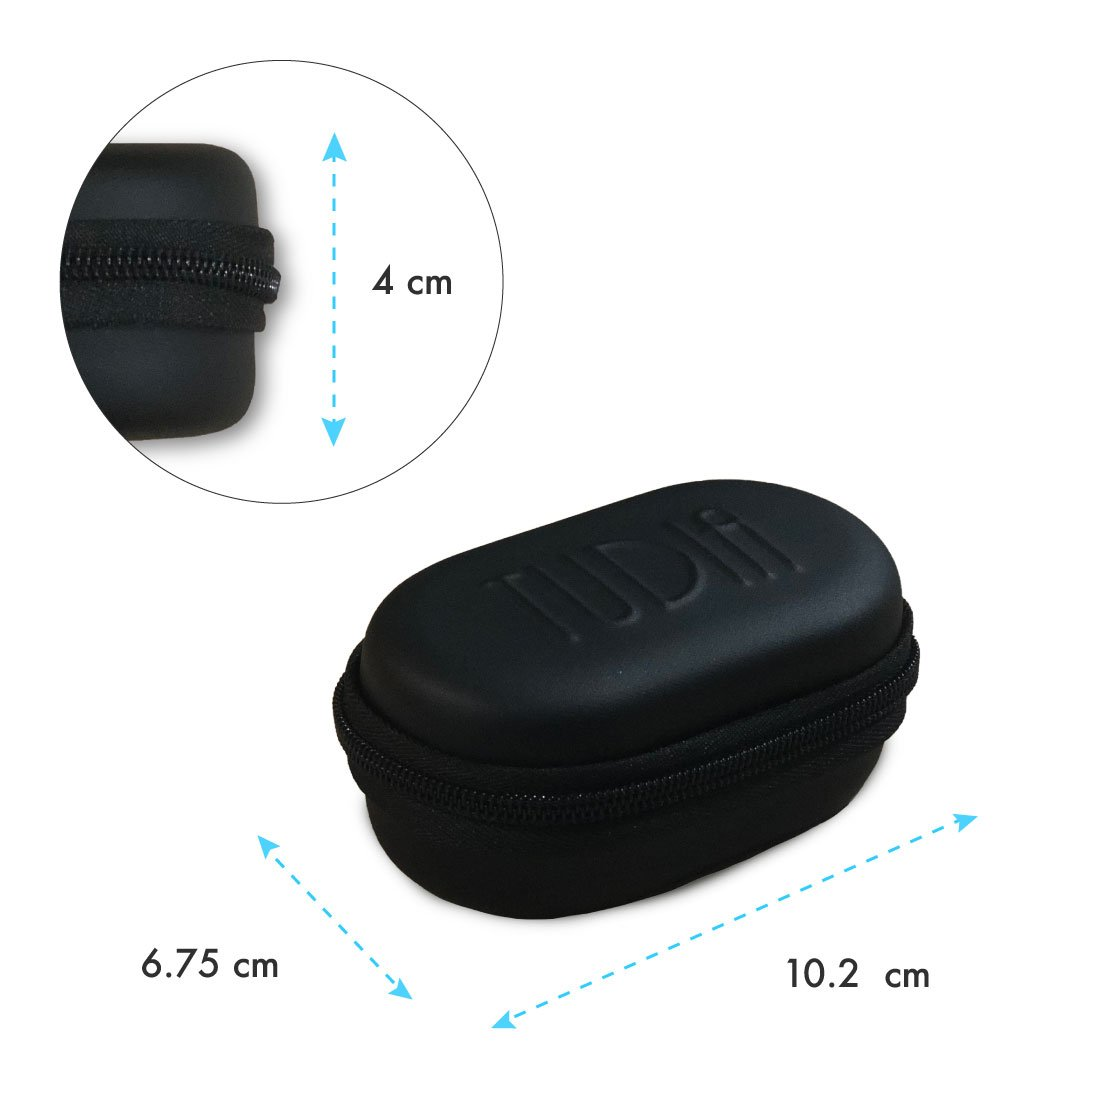 TUDIA Hard Travel EVA Carrying Storage Case for Essential Products/Essential Phone PH-1 360 Degree Camera Lens by TUDIA (Image #5)